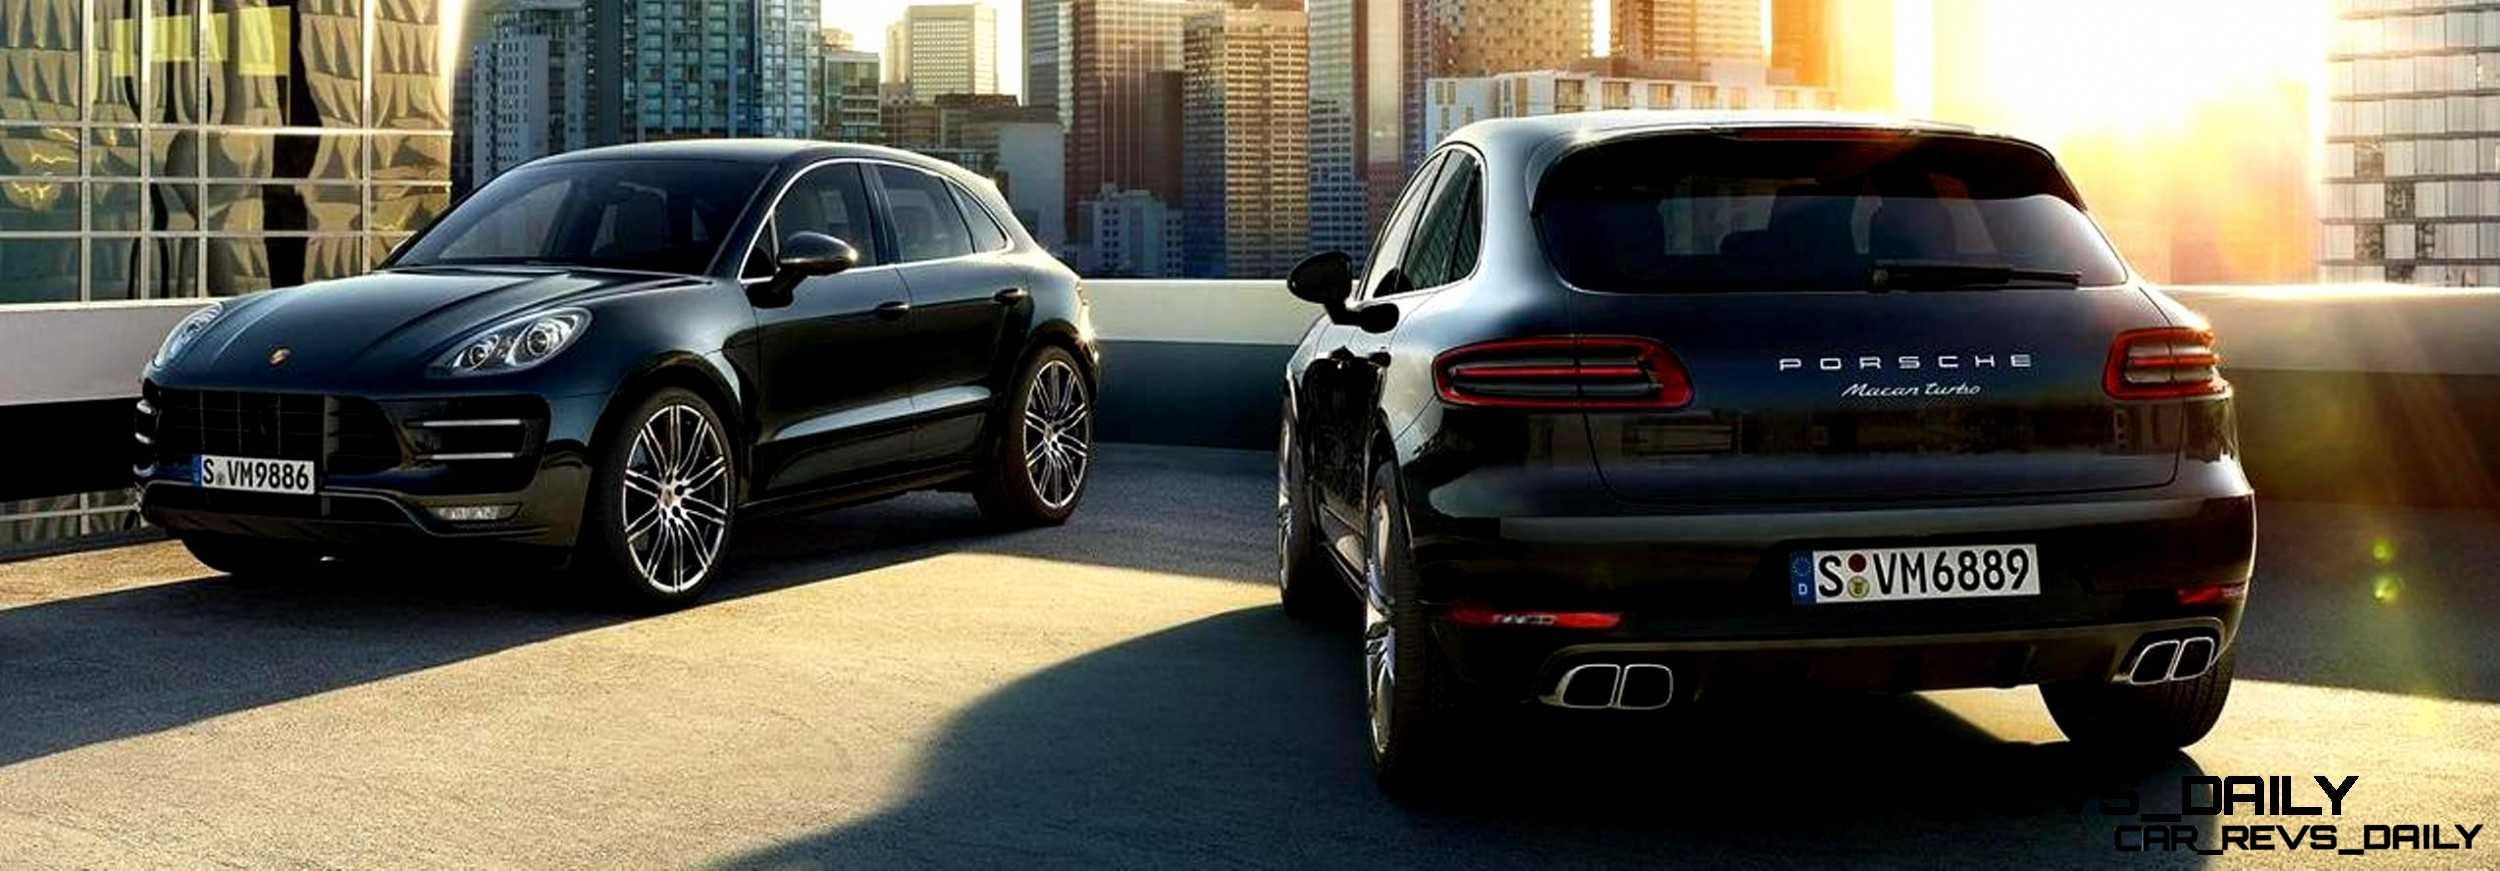 2015 Porsche Macan - Latest Images - CarRevsDaily.com 55